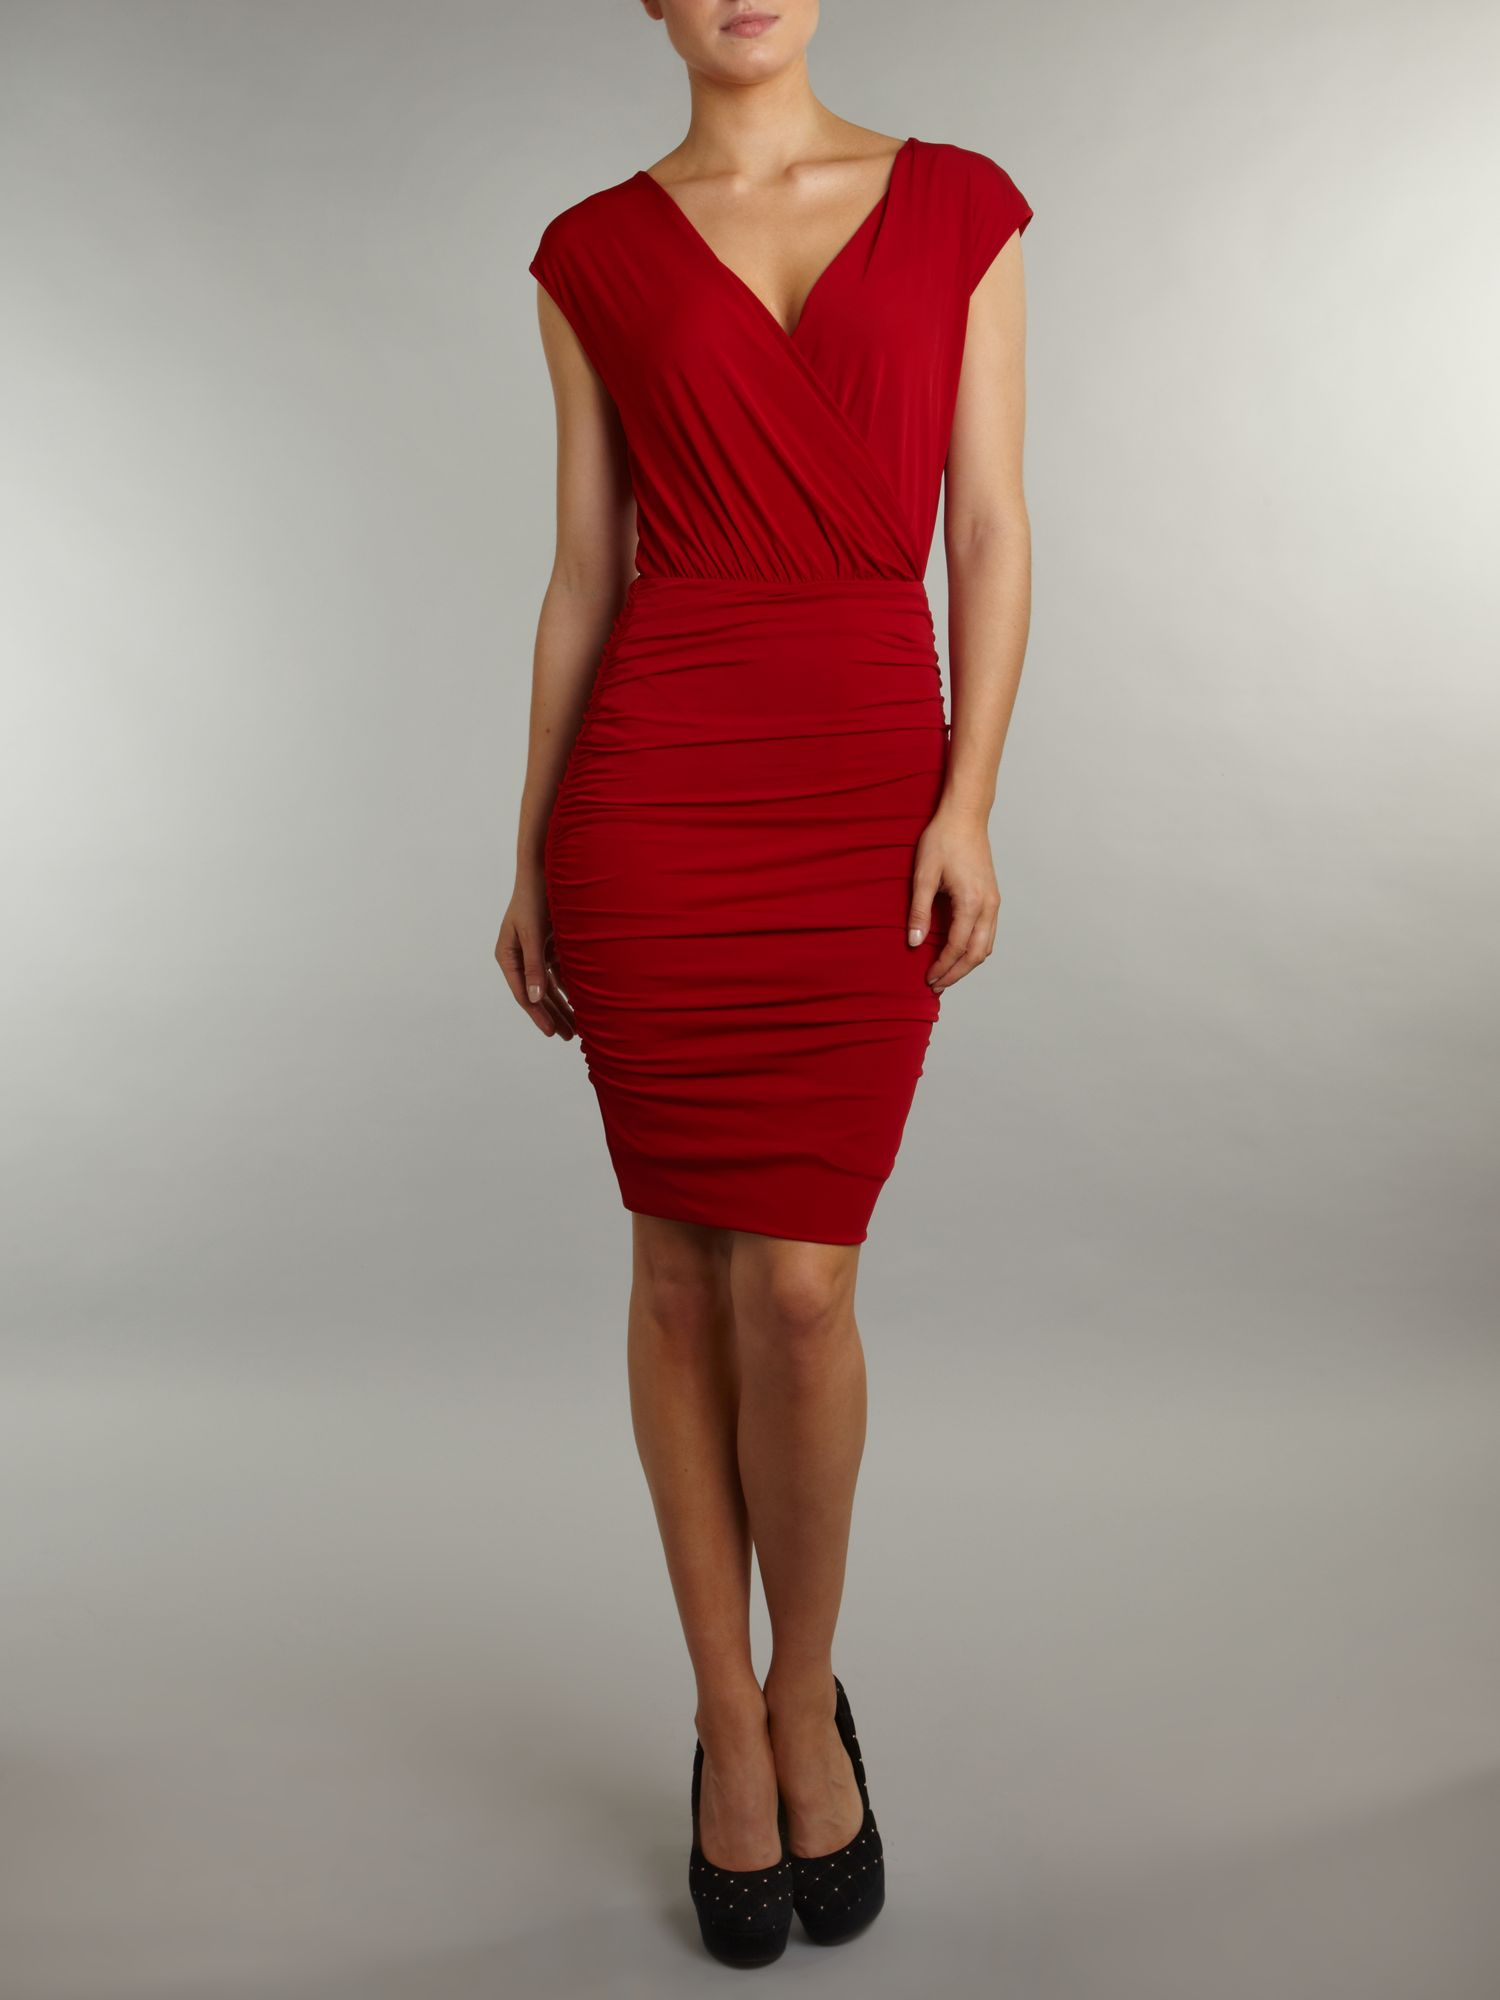 Alby v neck wrap dress